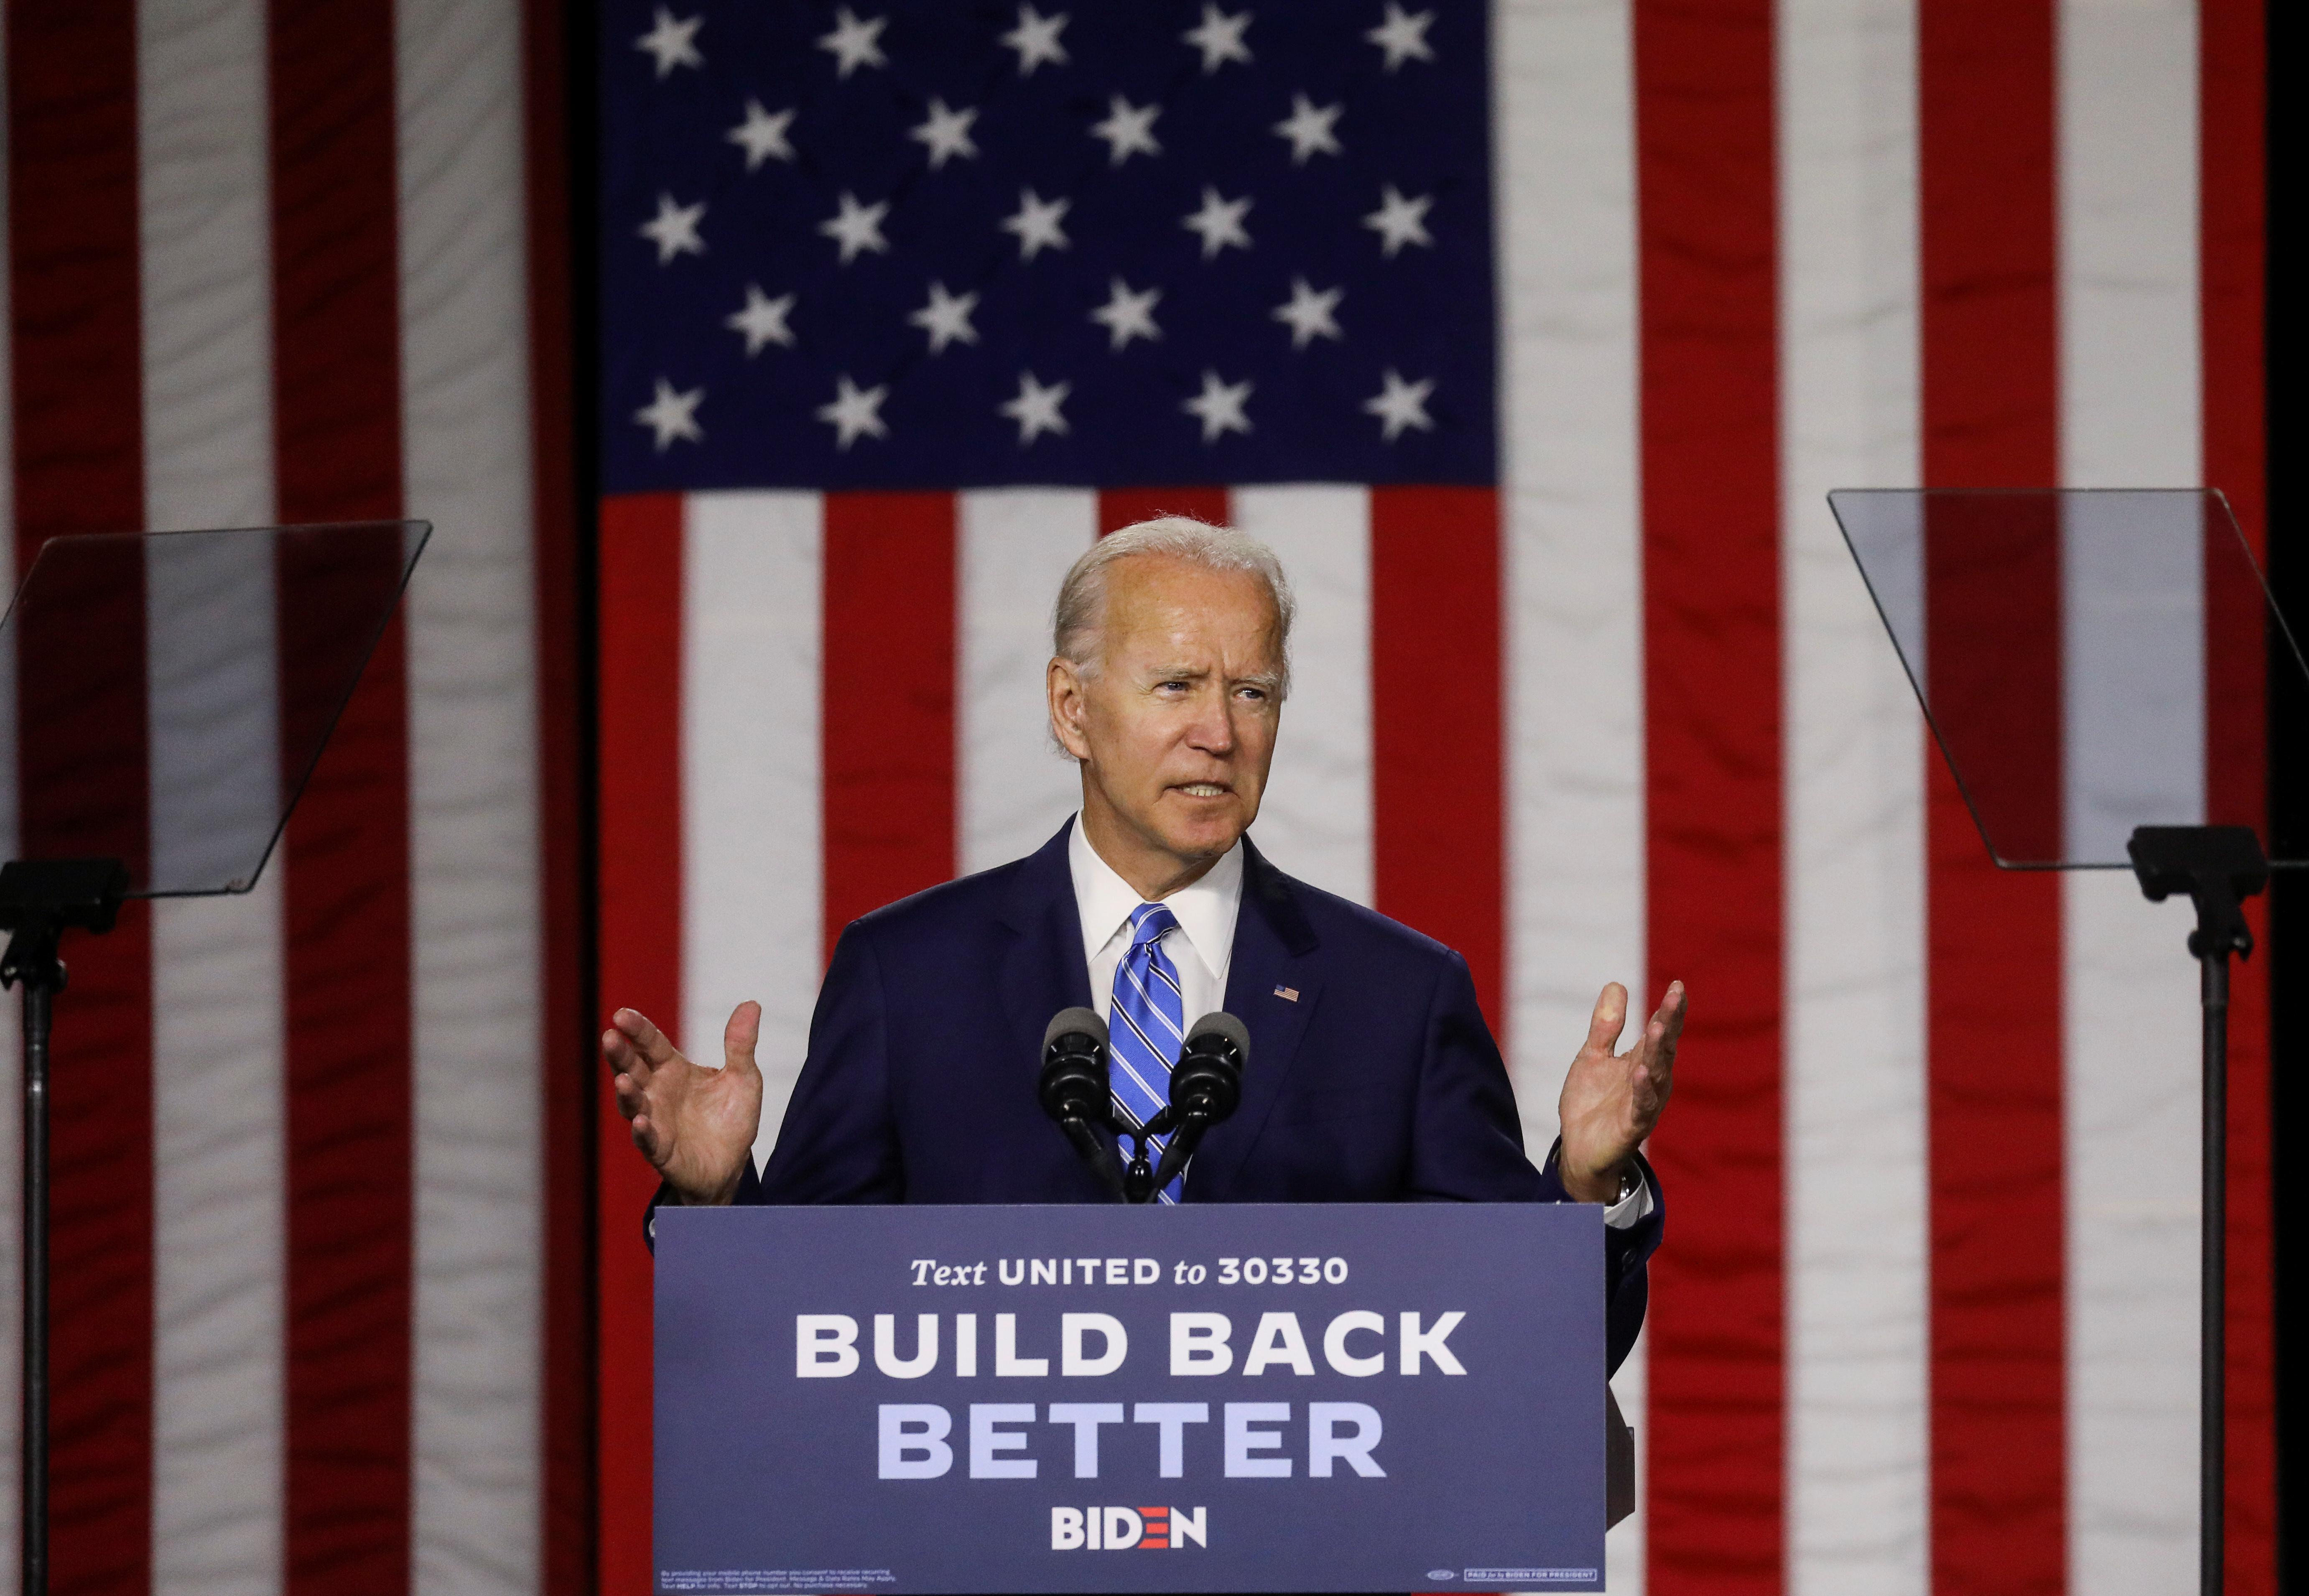 Biden clean-energy plan would spend $2 trillion to boost U.S. economy